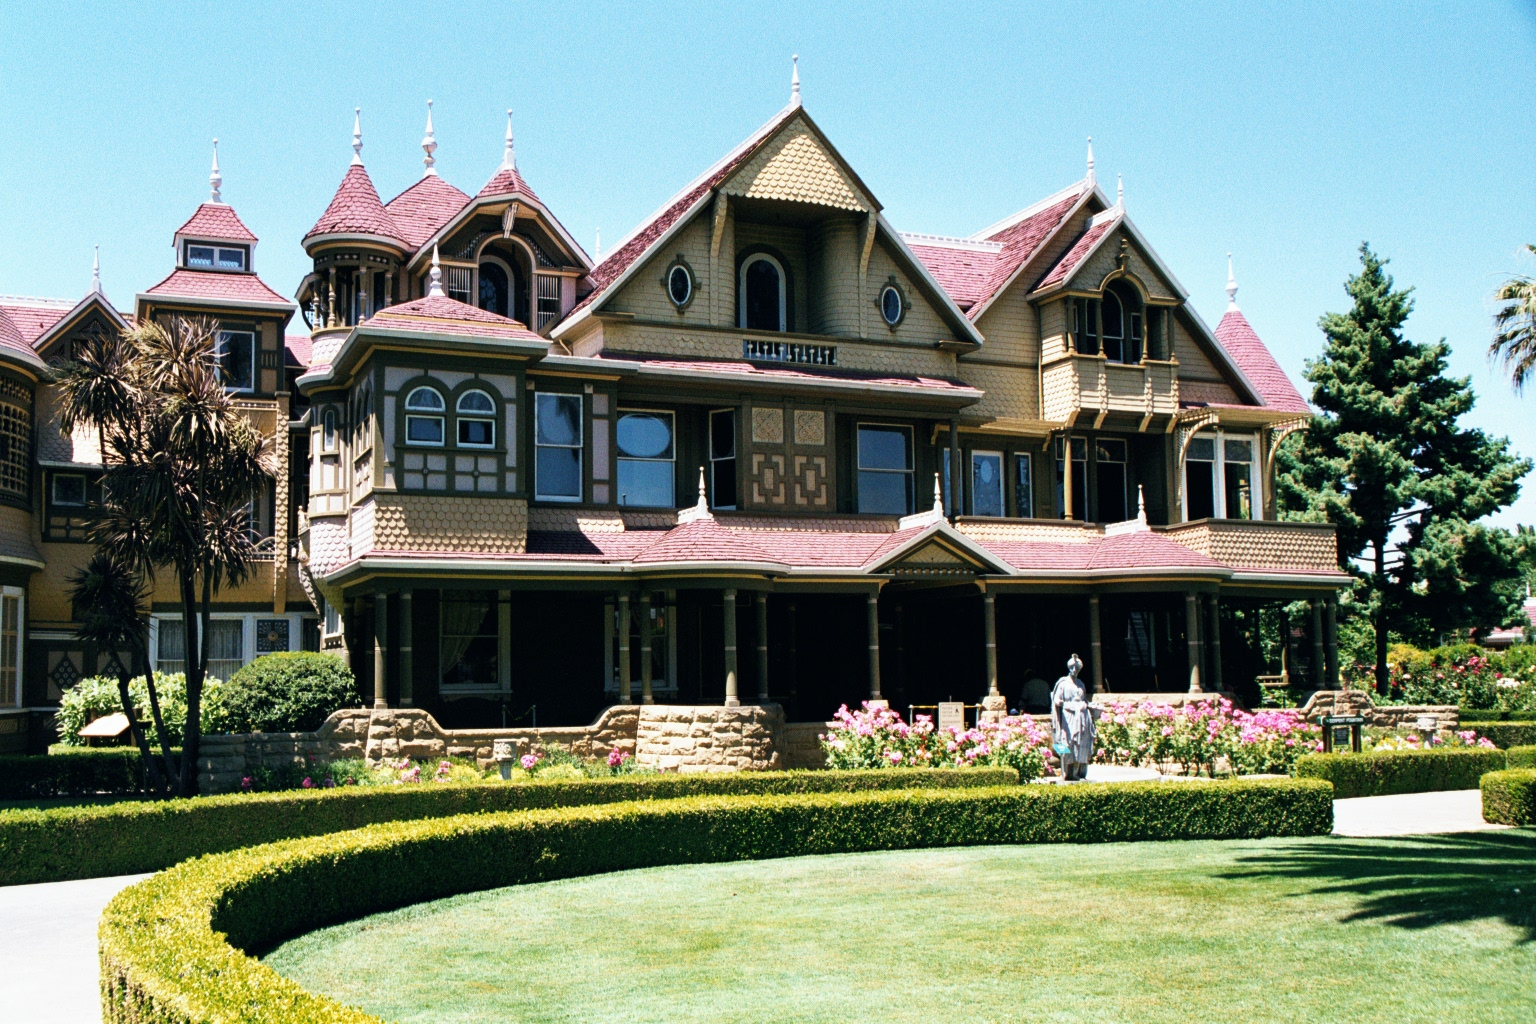 Front View Of The Mansion. Image: Ben Franske